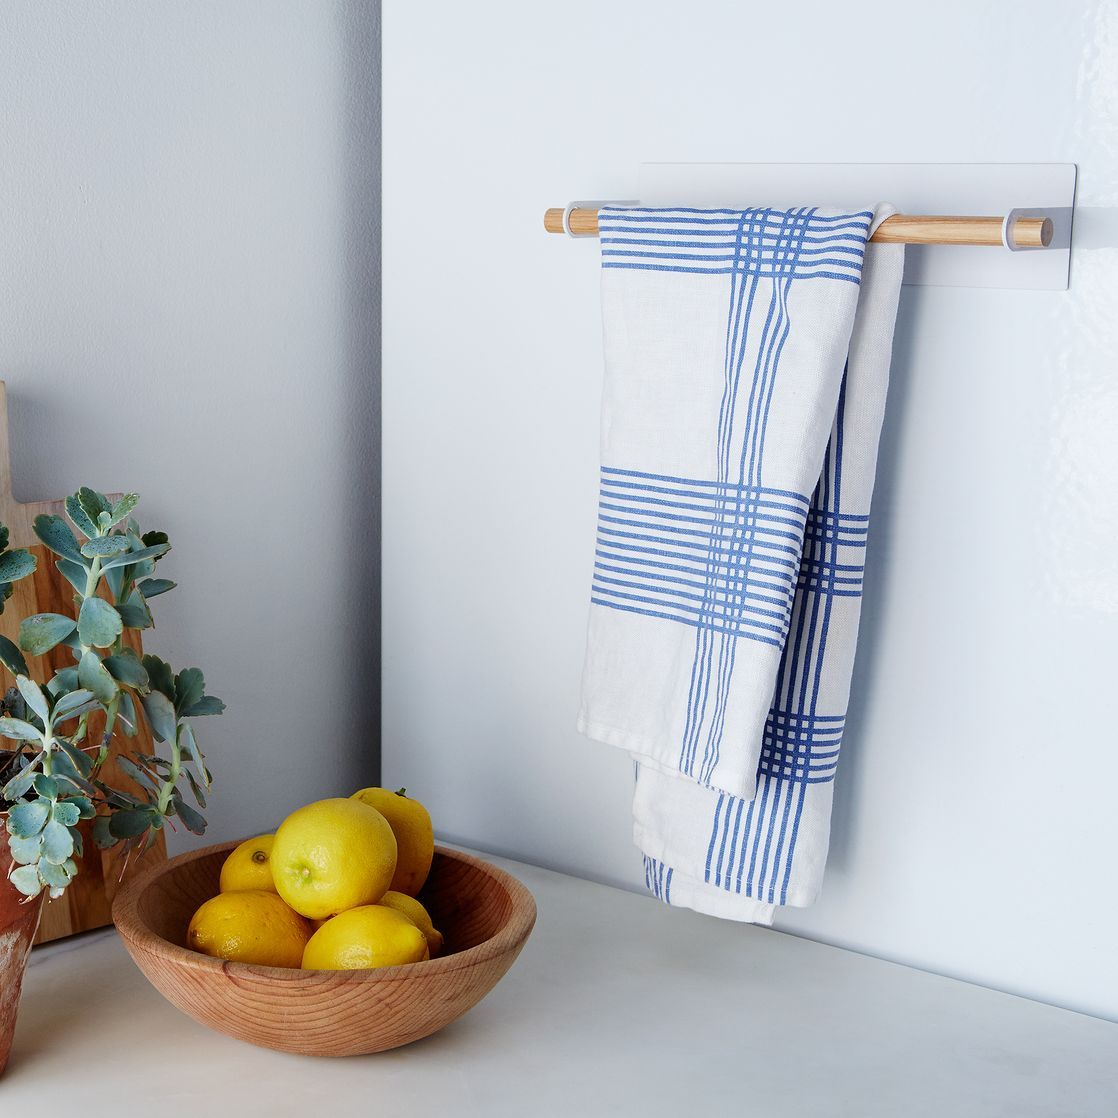 Magnetic Kitchen Towel Holder | Towel holders, Towels and Kitchens